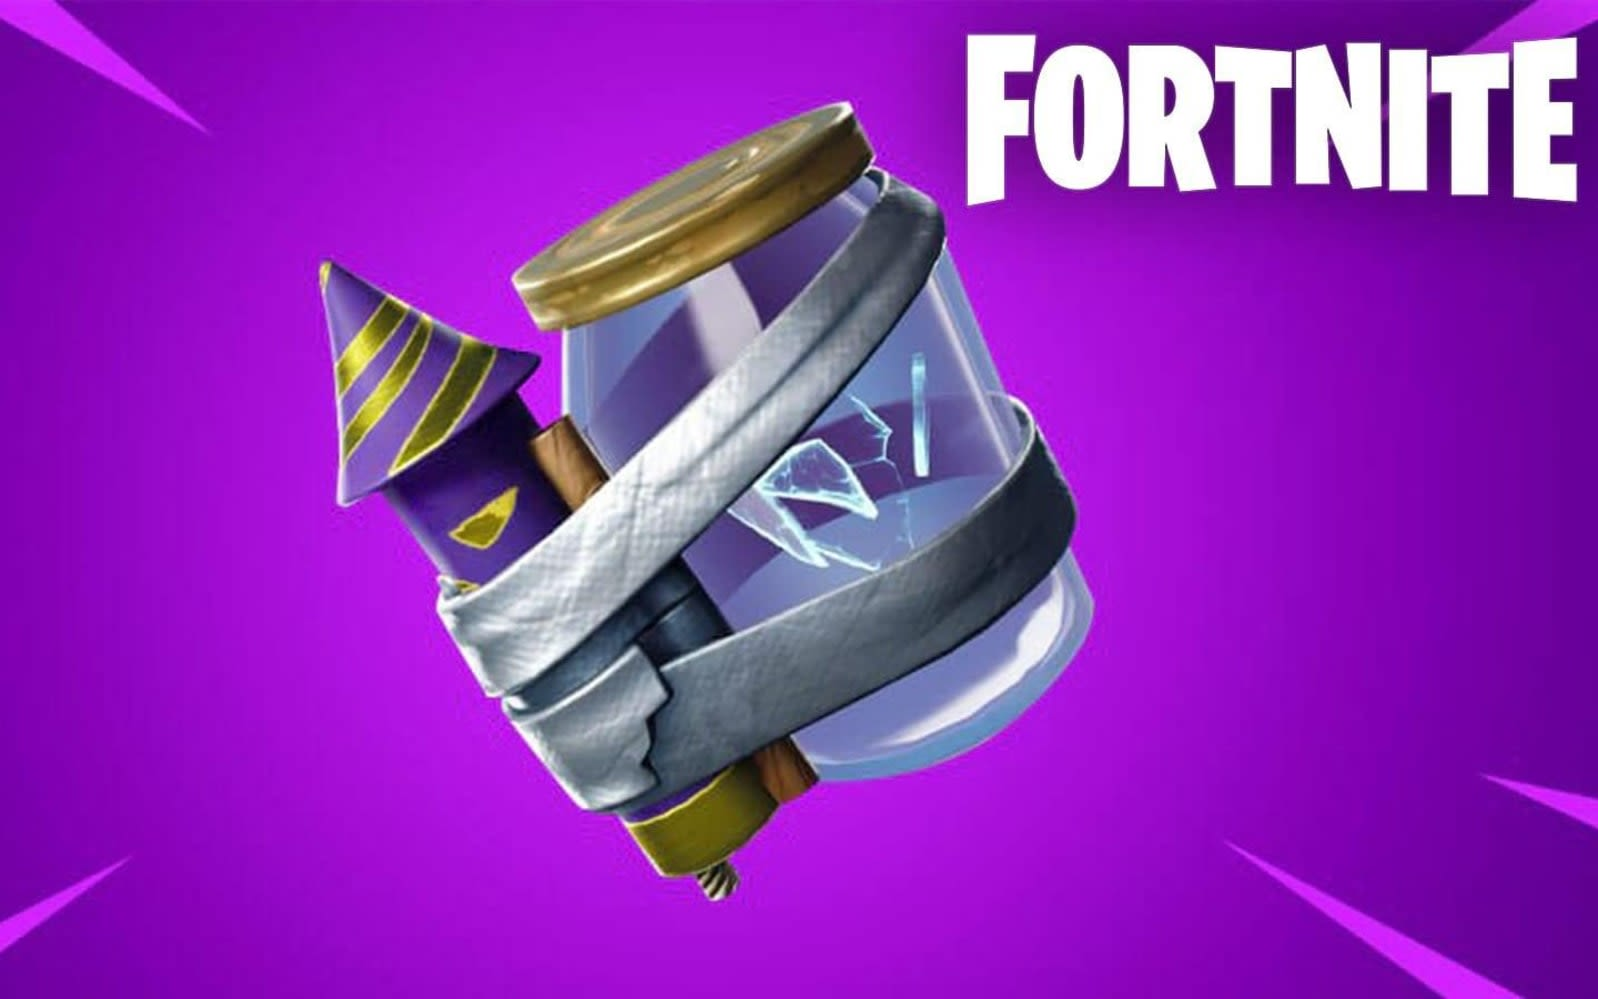 The latest 'Fortnite' weapon lets you drop heavy stuff on